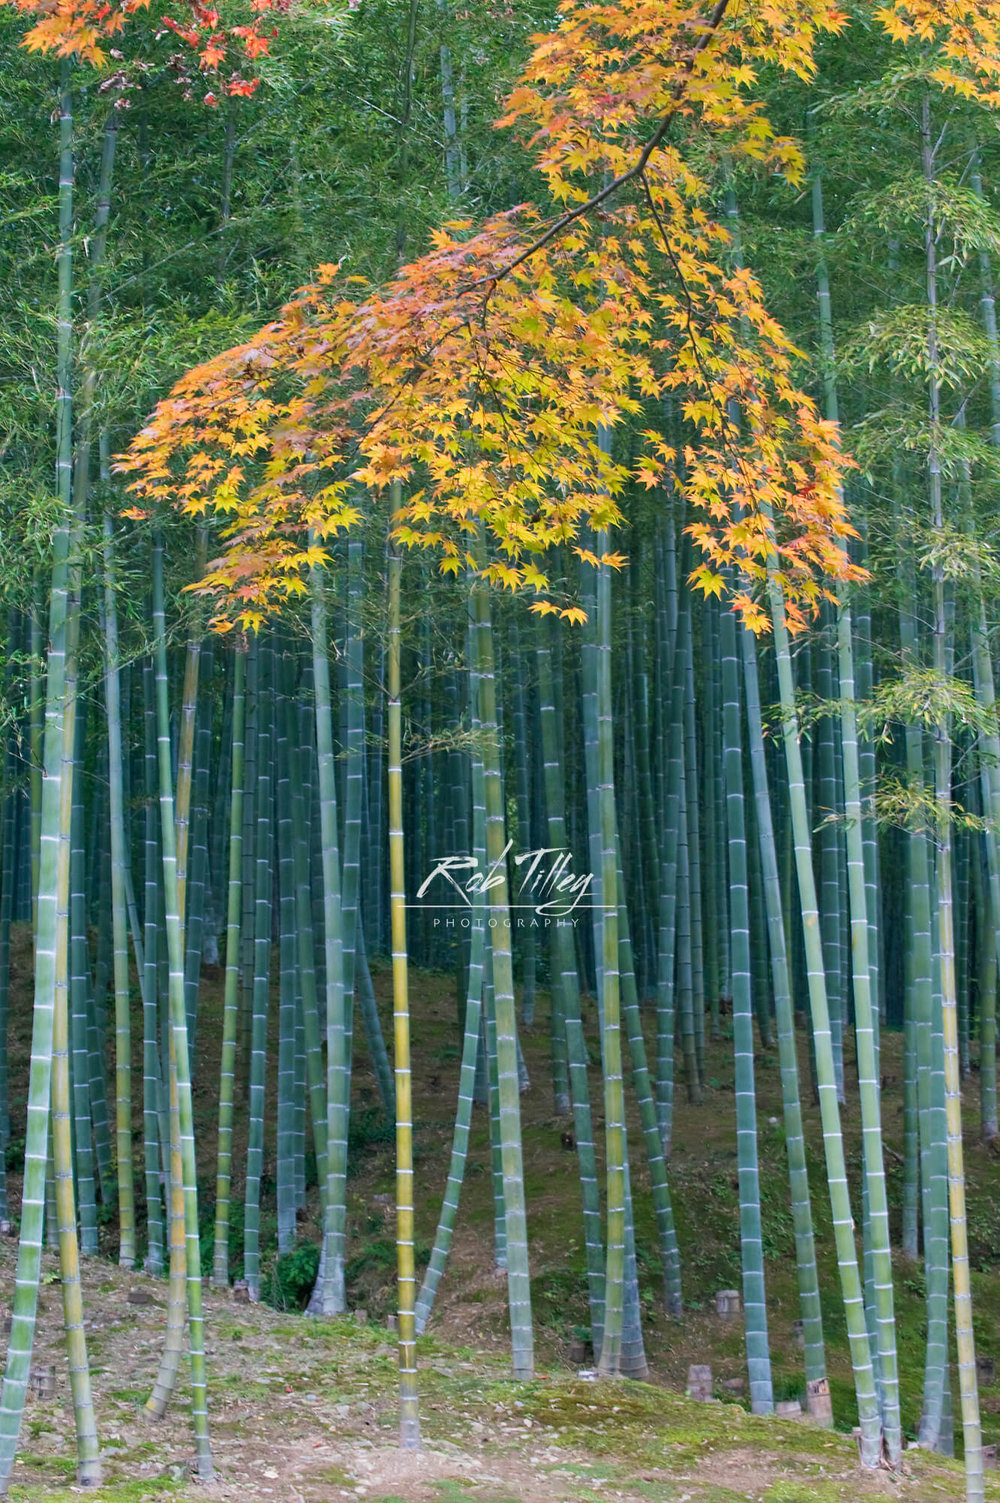 Autumn Bamboo Grove